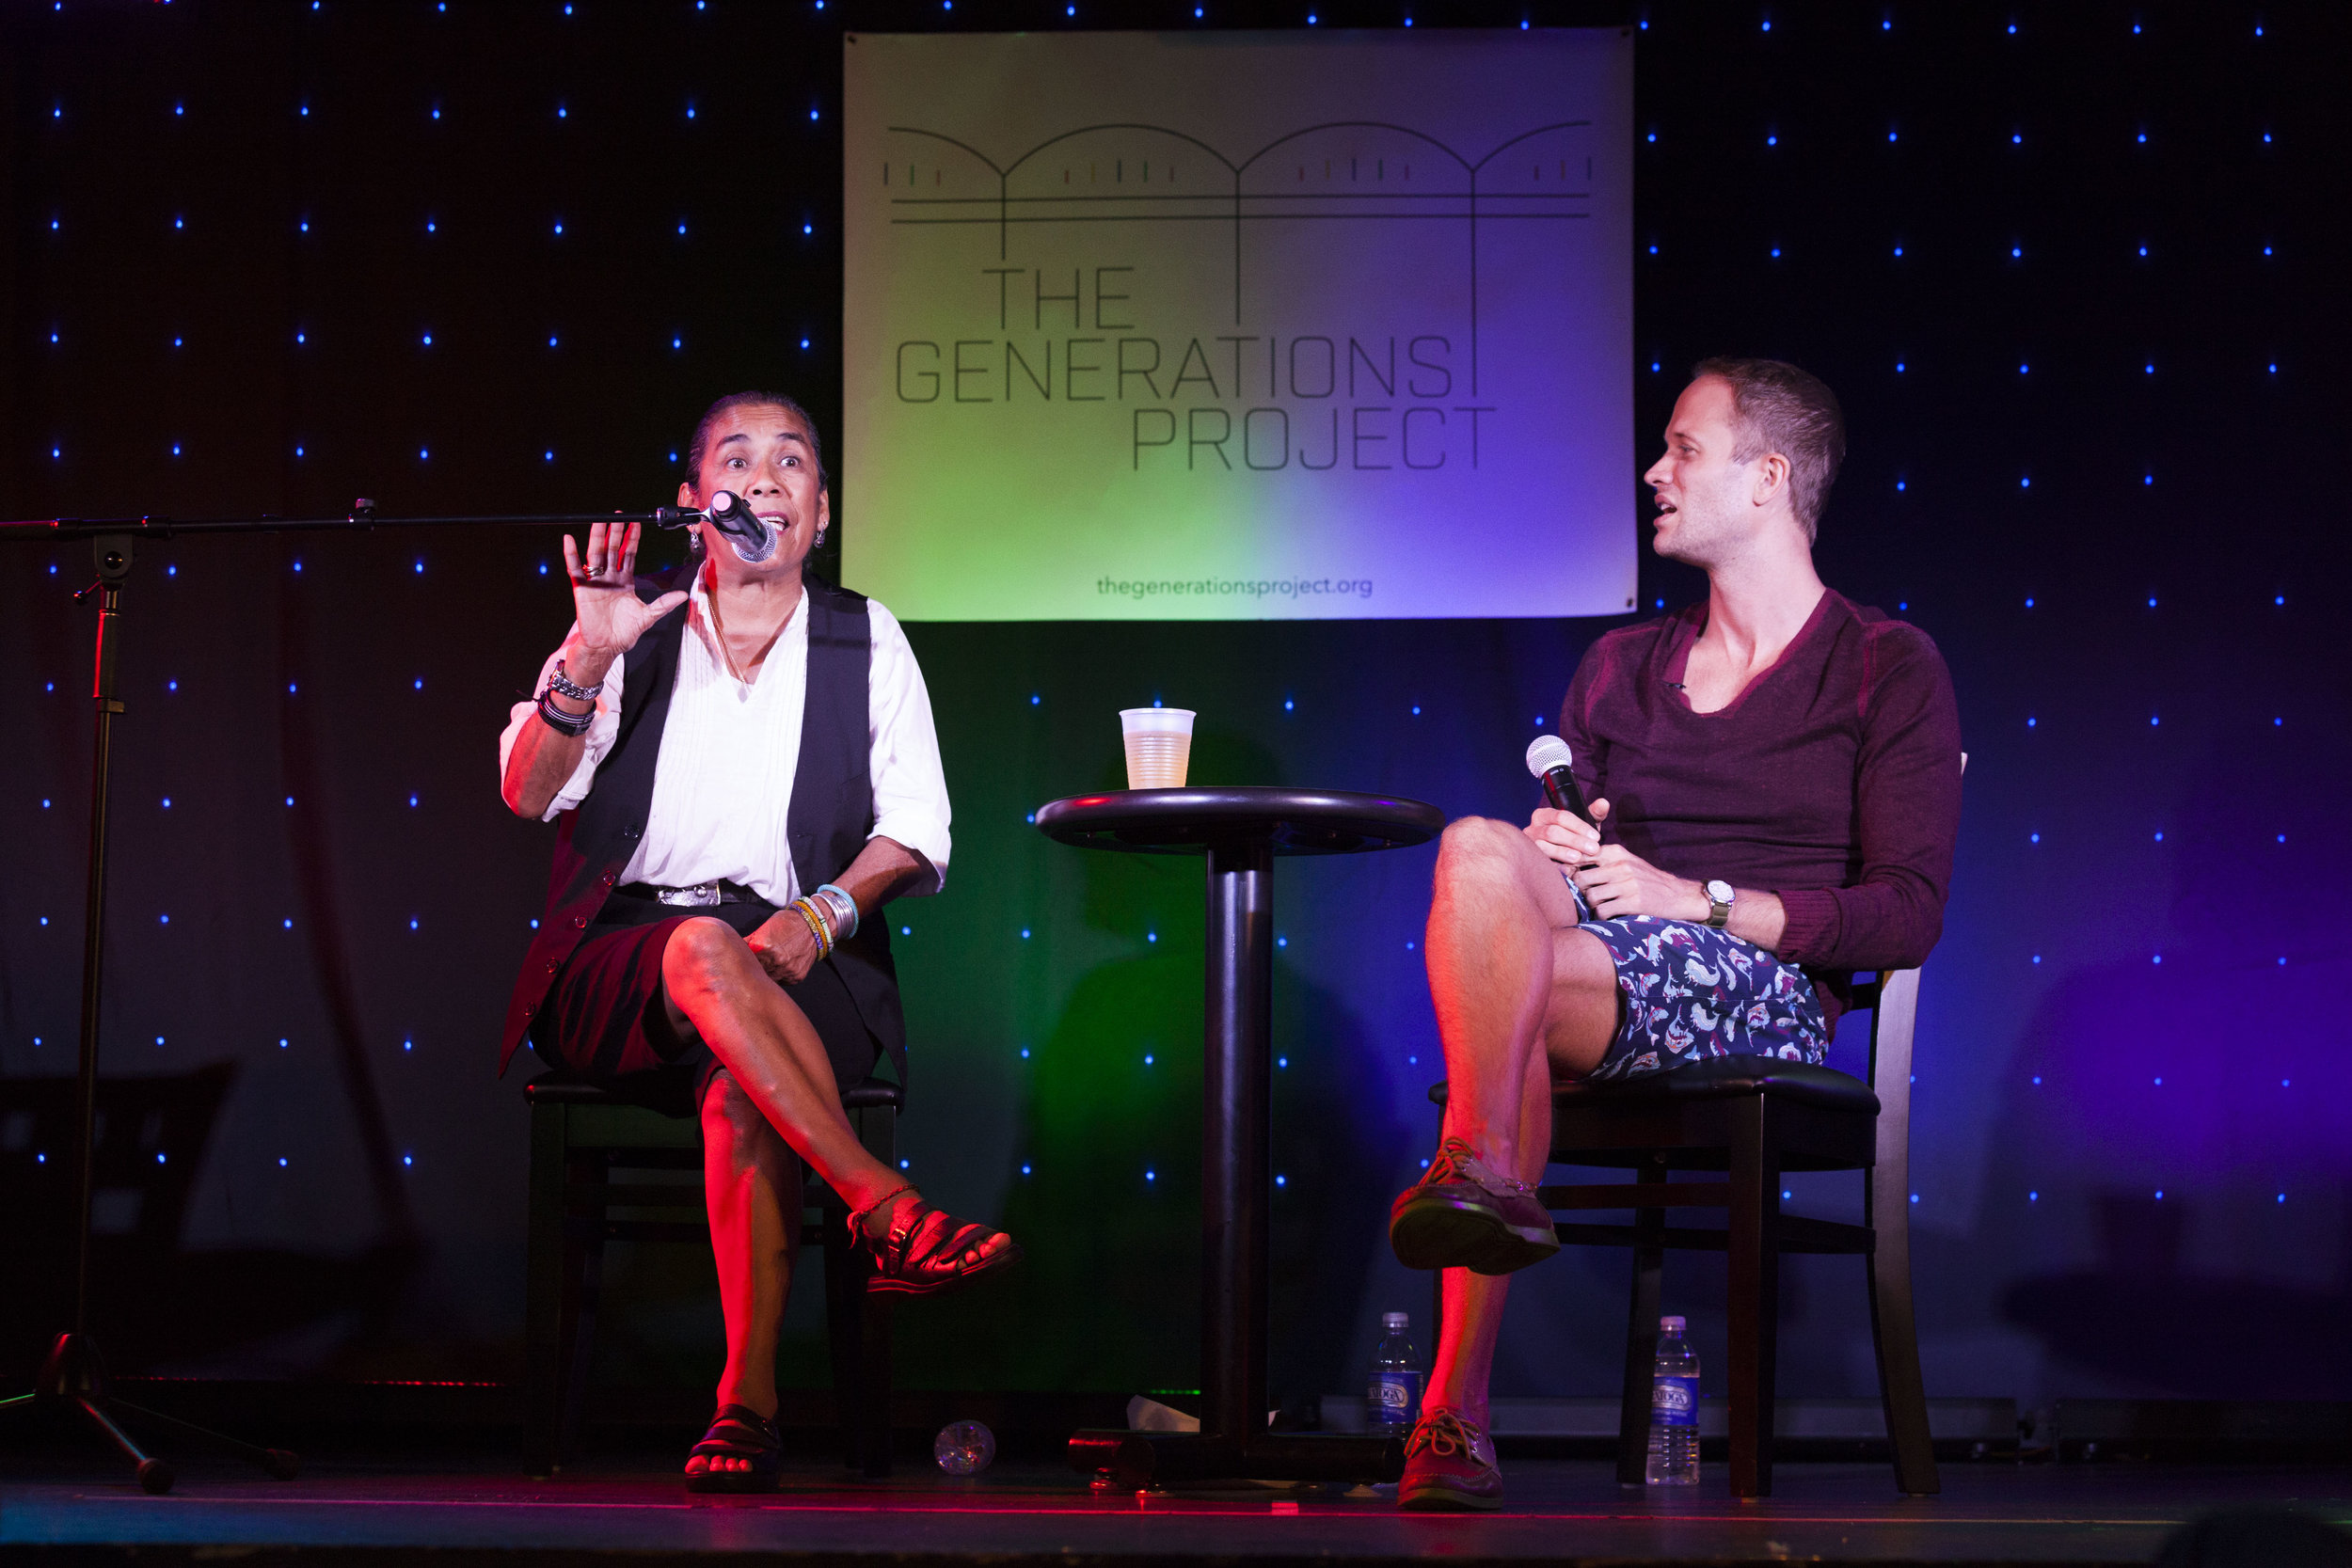 2017_07_31_Generations_Project_Ptown_Show_138.JPG